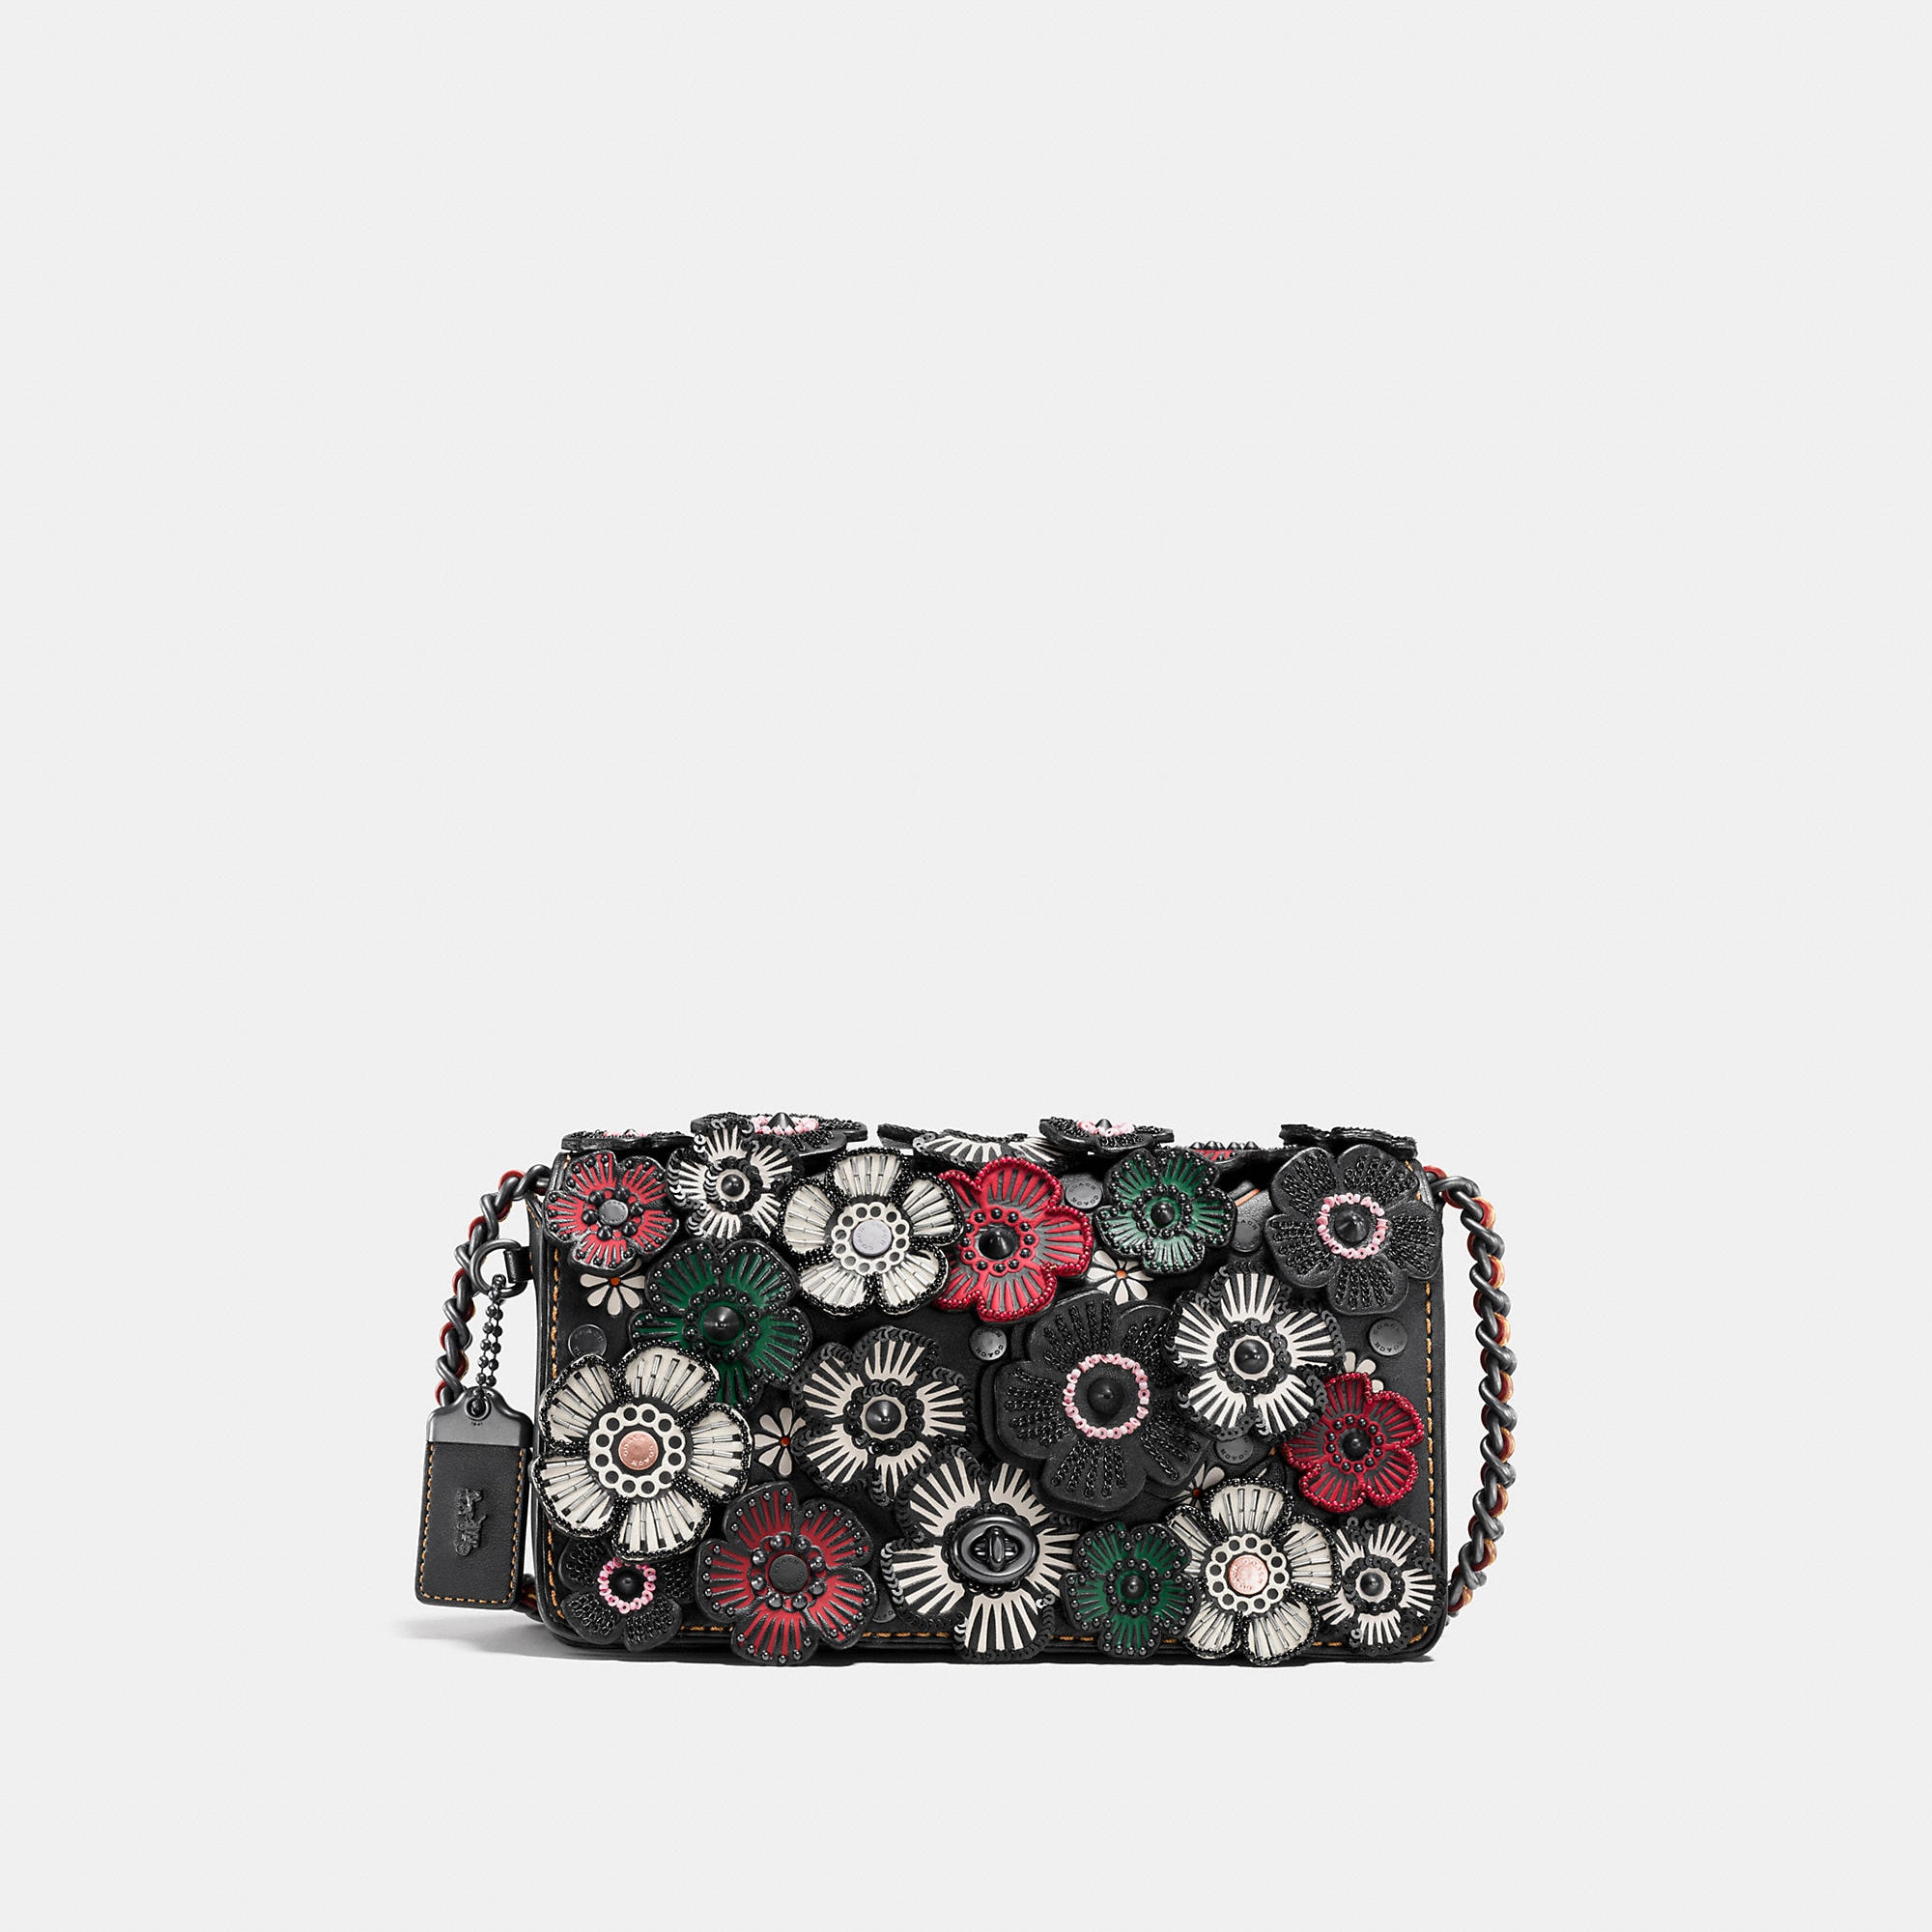 Coach Dinky Crossbody In Glovetanned Leather With Embellished Tea Rose Applique